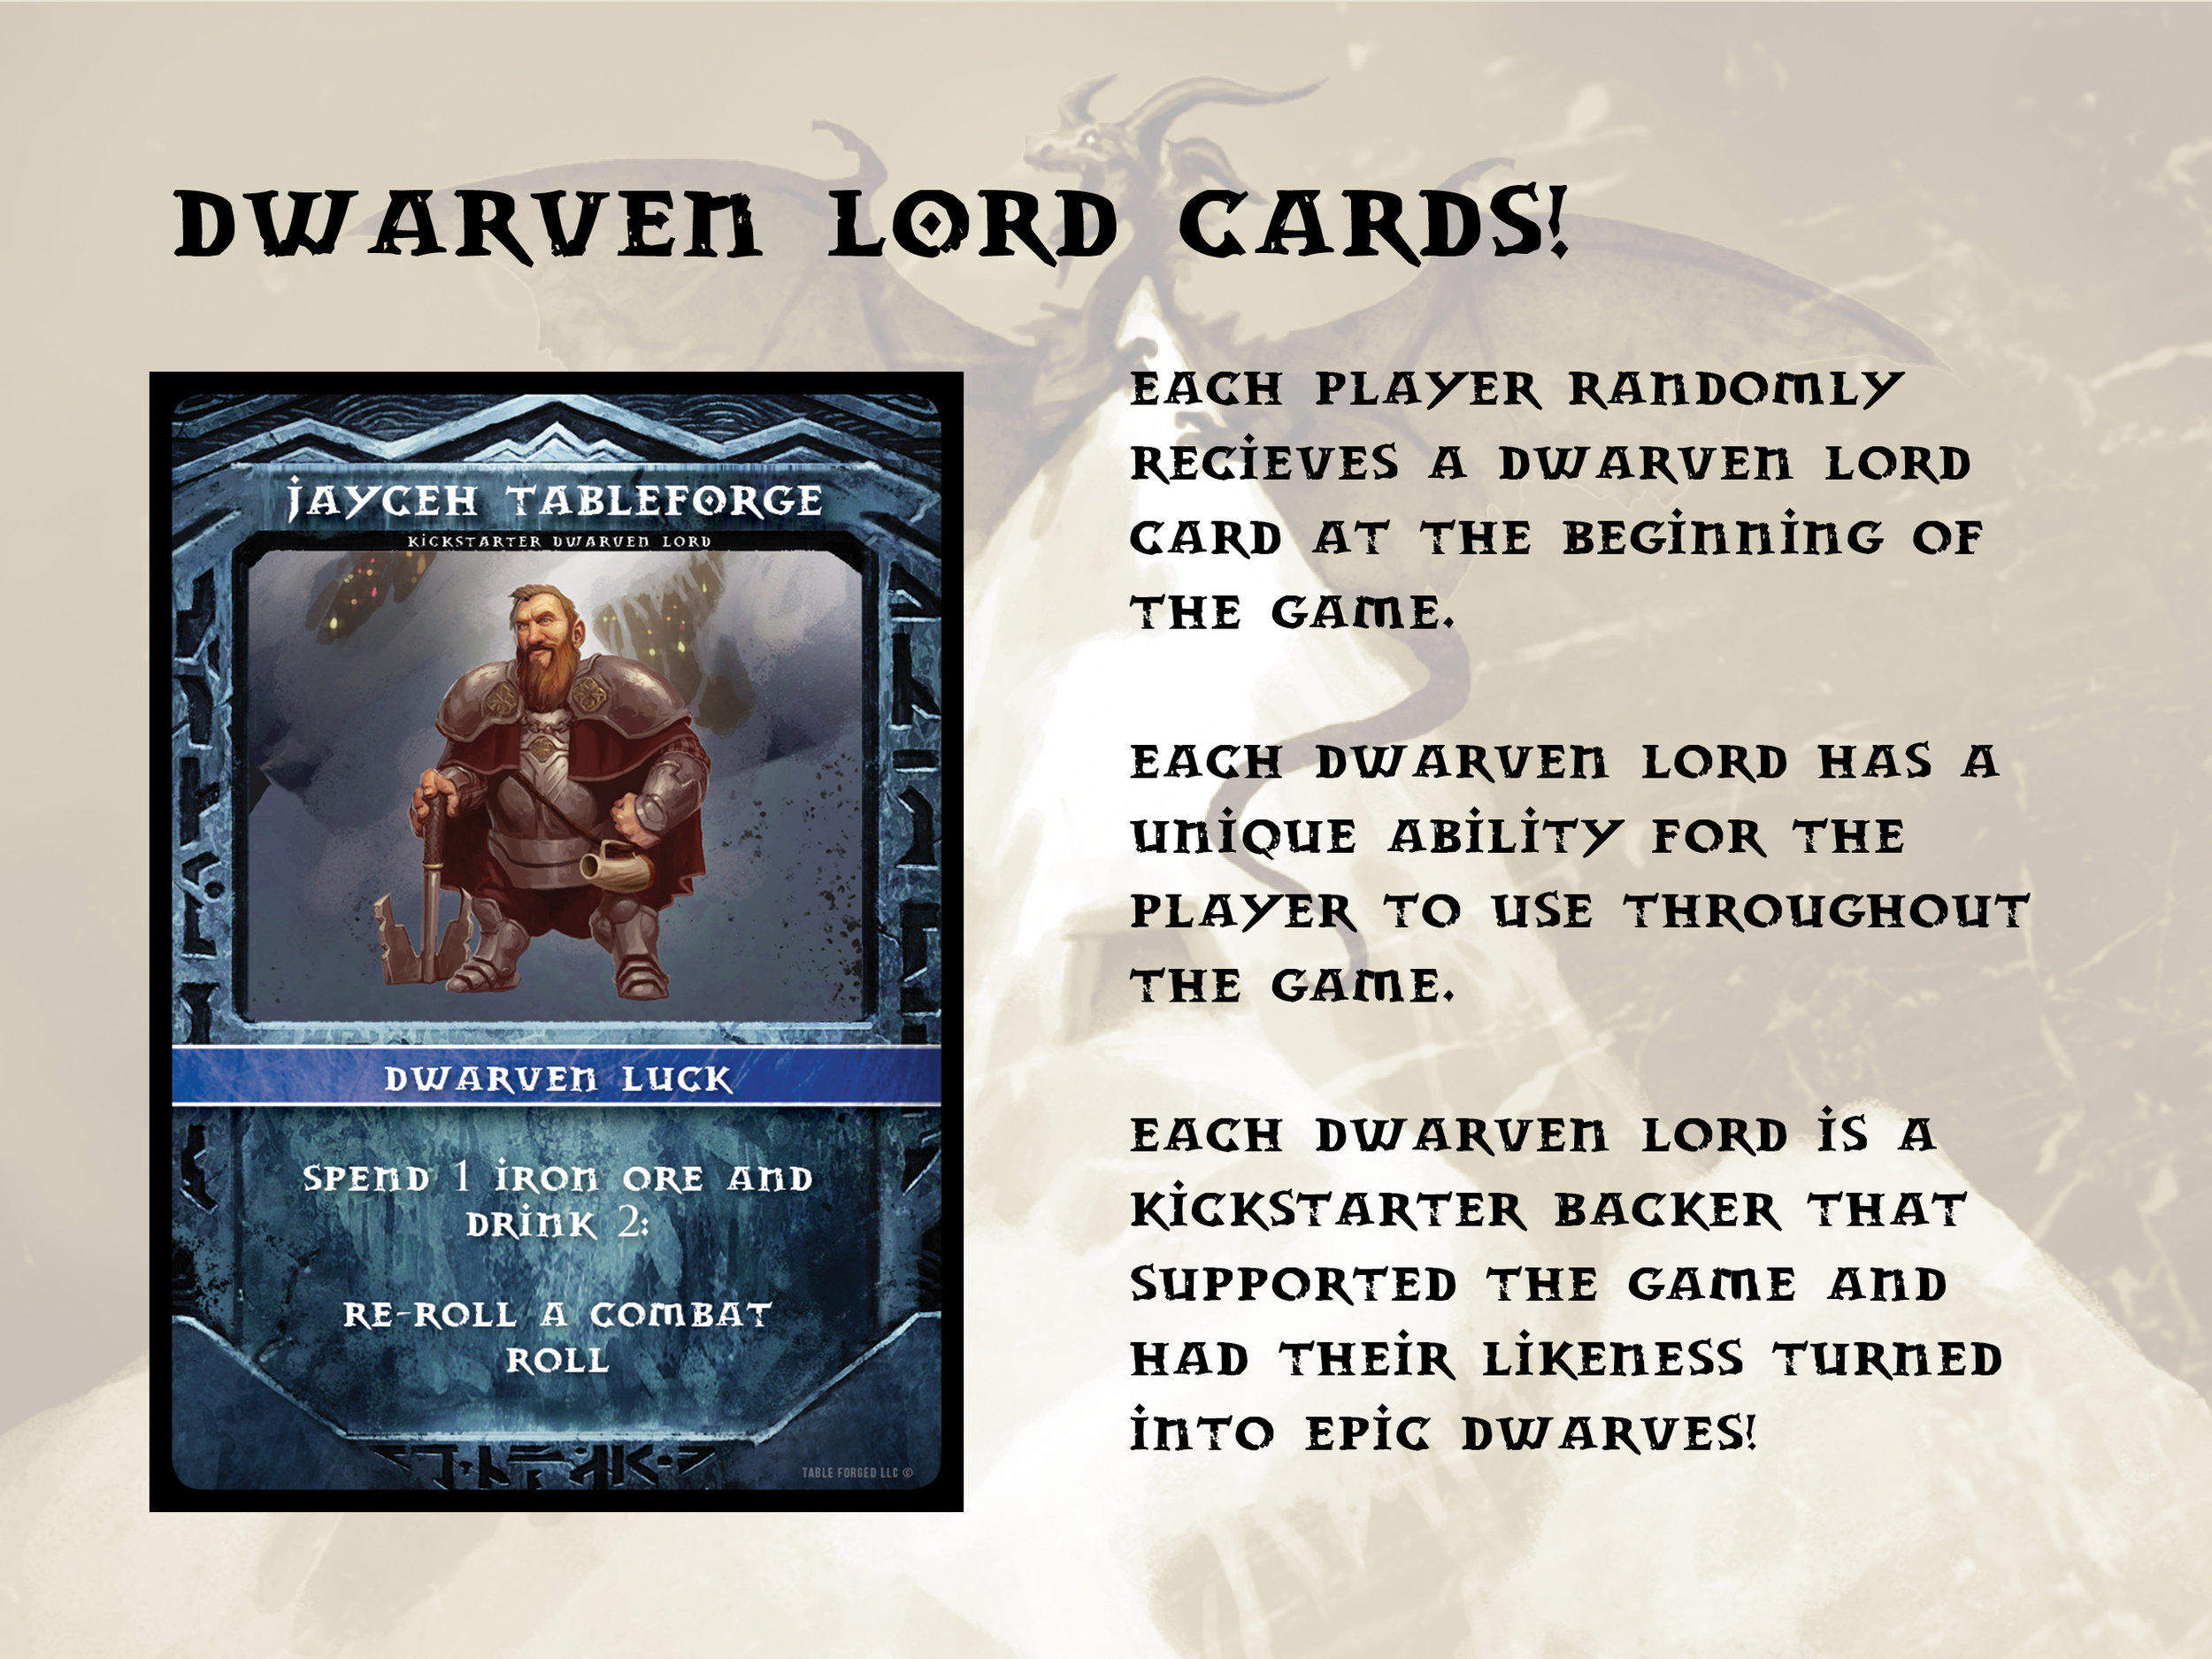 Dwarven Lords Cards sample.jpg